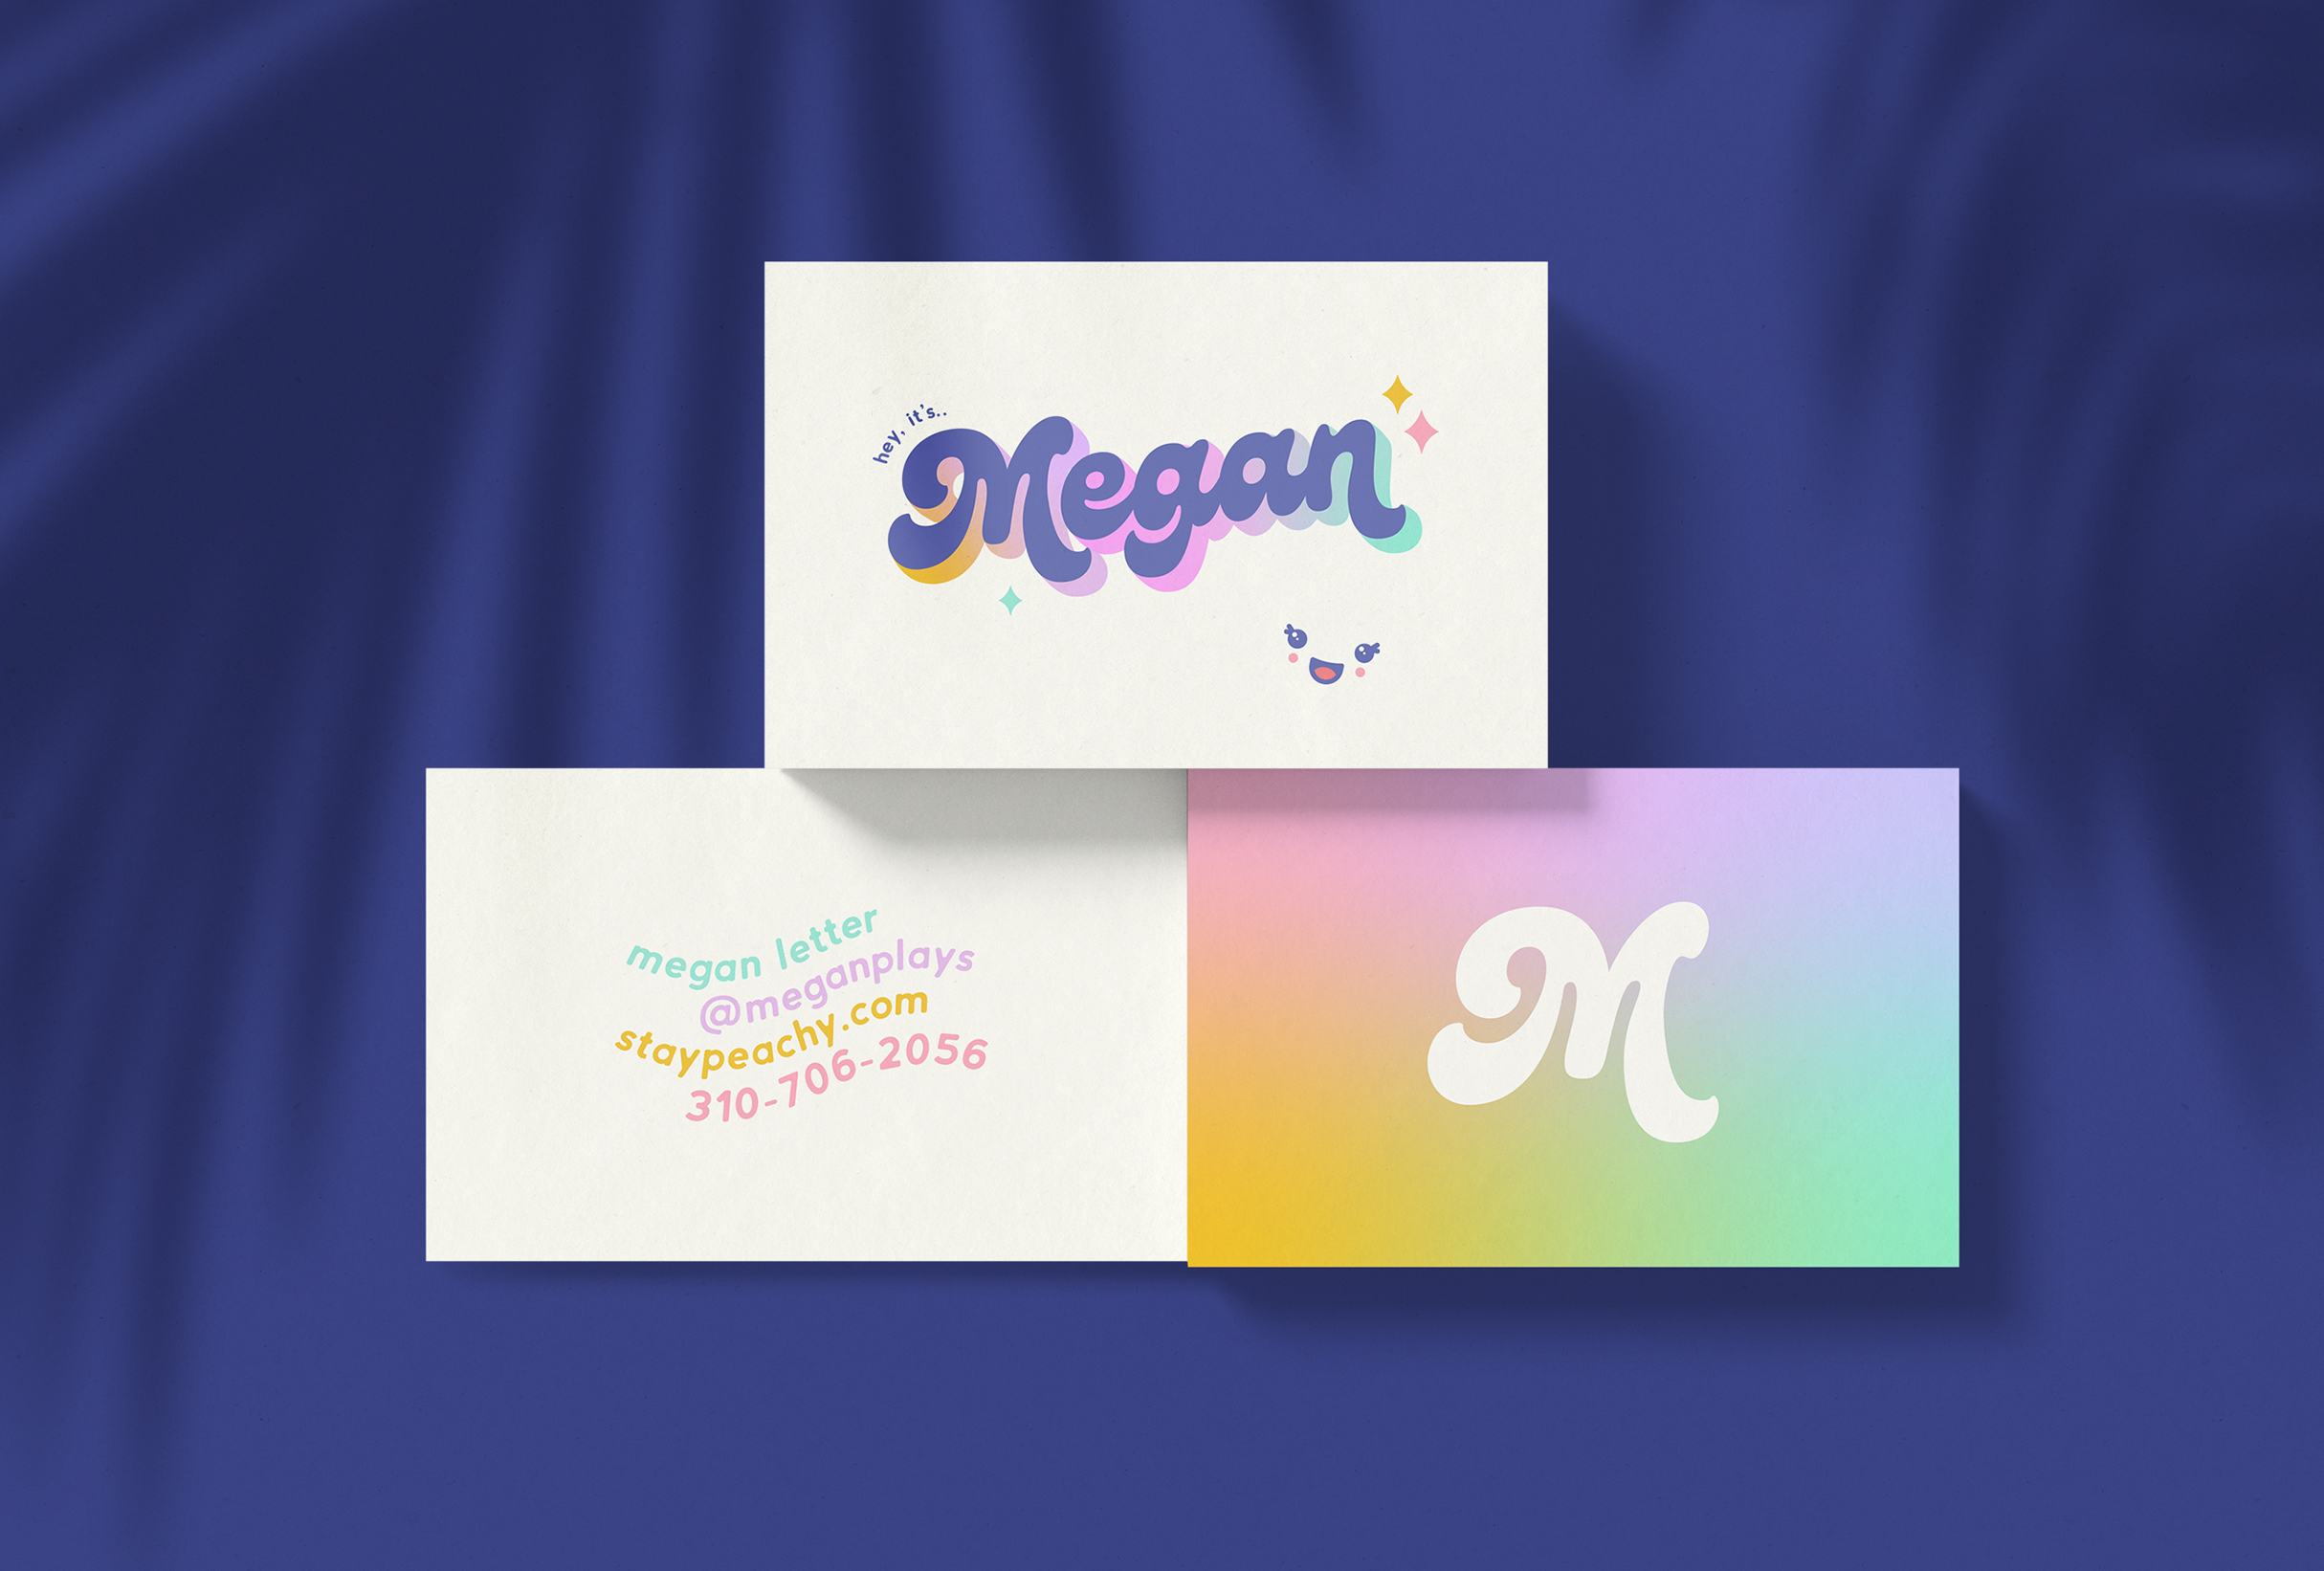 Business card design for MeganPlays, a successful gaming & lifestyle youtuber - designed by Wiltshire-based graphic designer, Kaye Huett